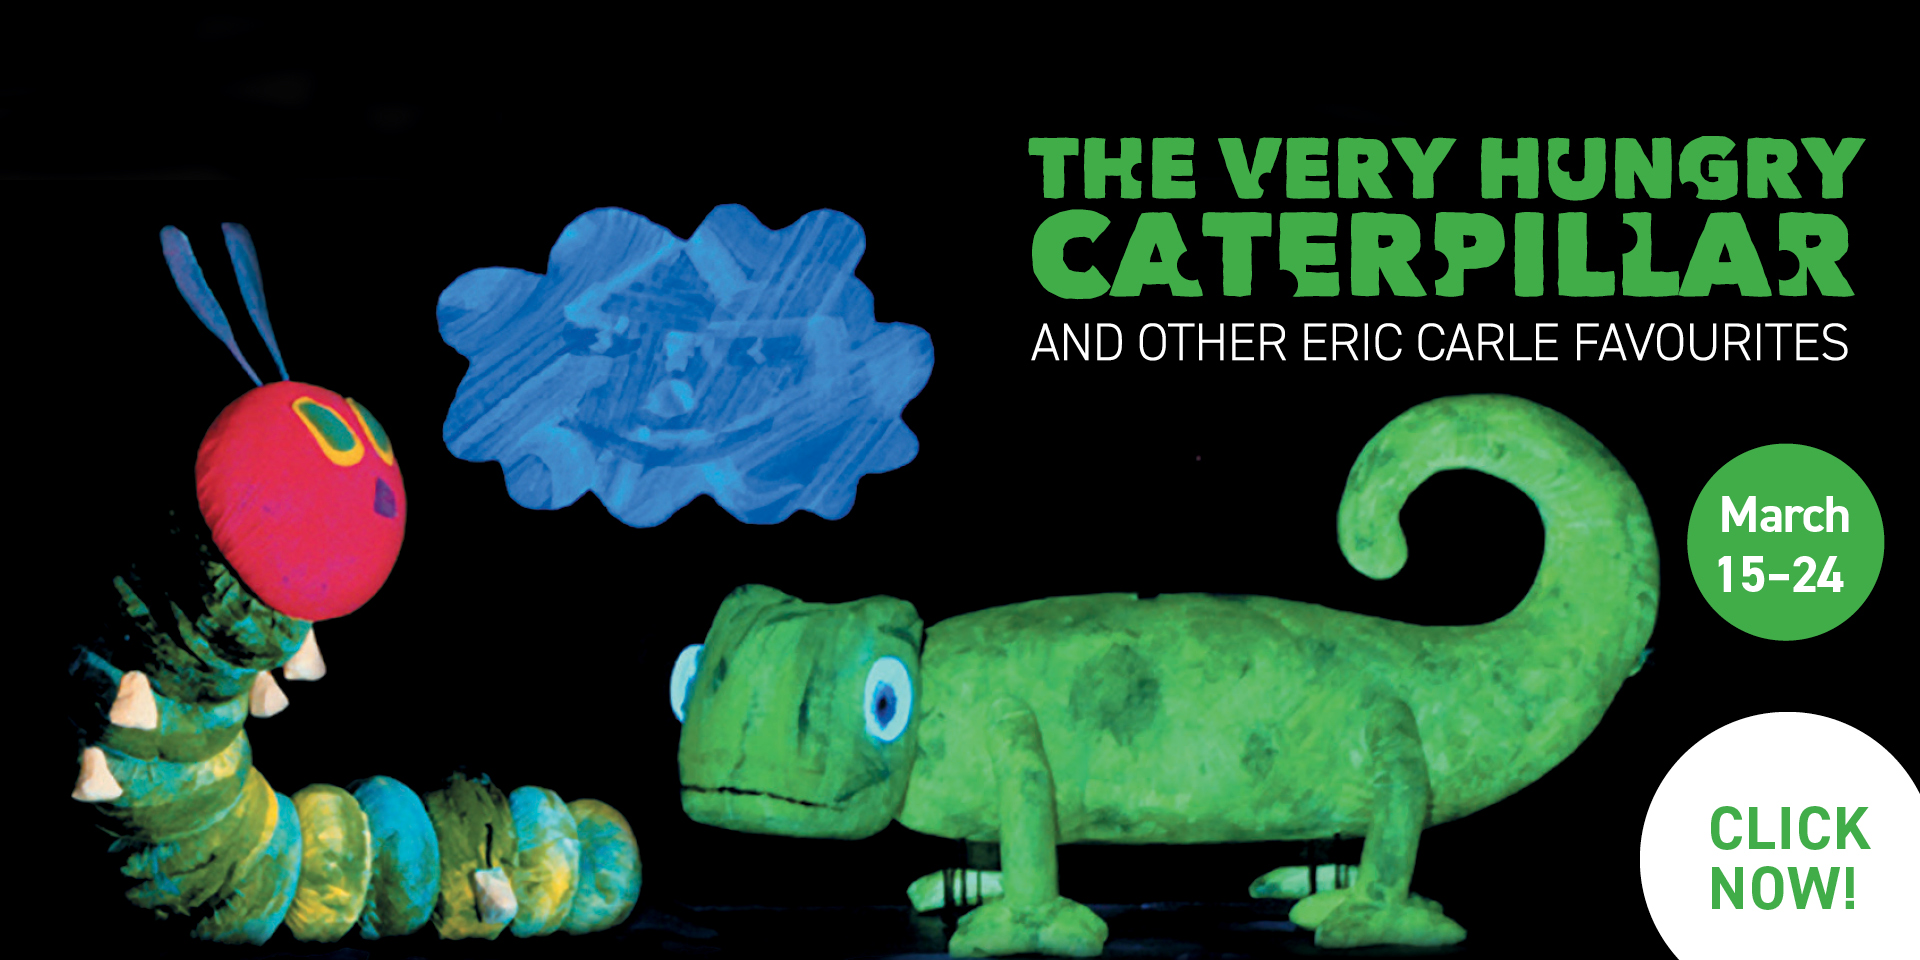 The Very Hungry Caterpillar and Other Eric Carle Favourites, March 15-24